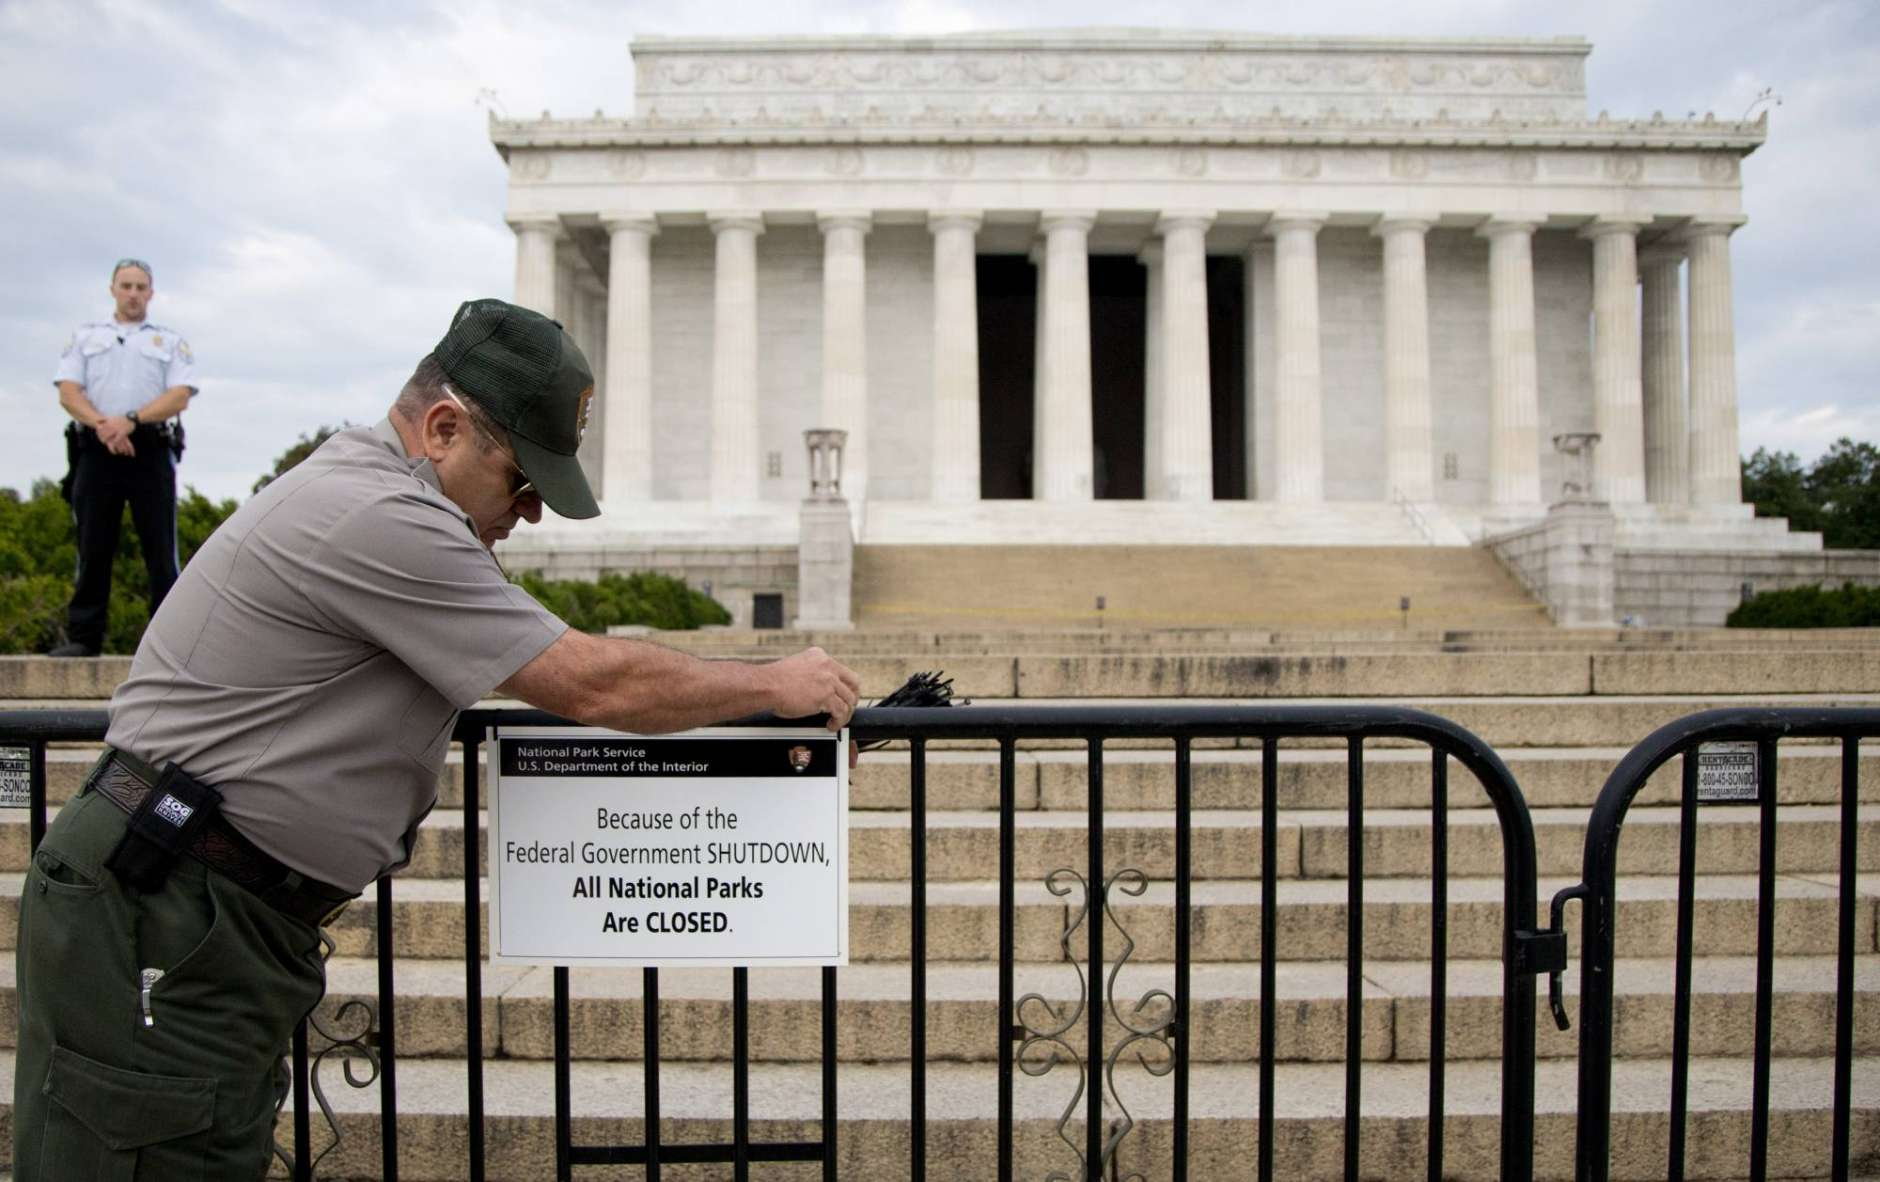 FILE - In this Oct. 1, 2013, file photo, A U.S. Park Police officer watches at left as a National Park Service employee posts a sign on a barricade closing access to the Lincoln Memorial in Washington. (AP Photo/Carolyn Kaster, File)